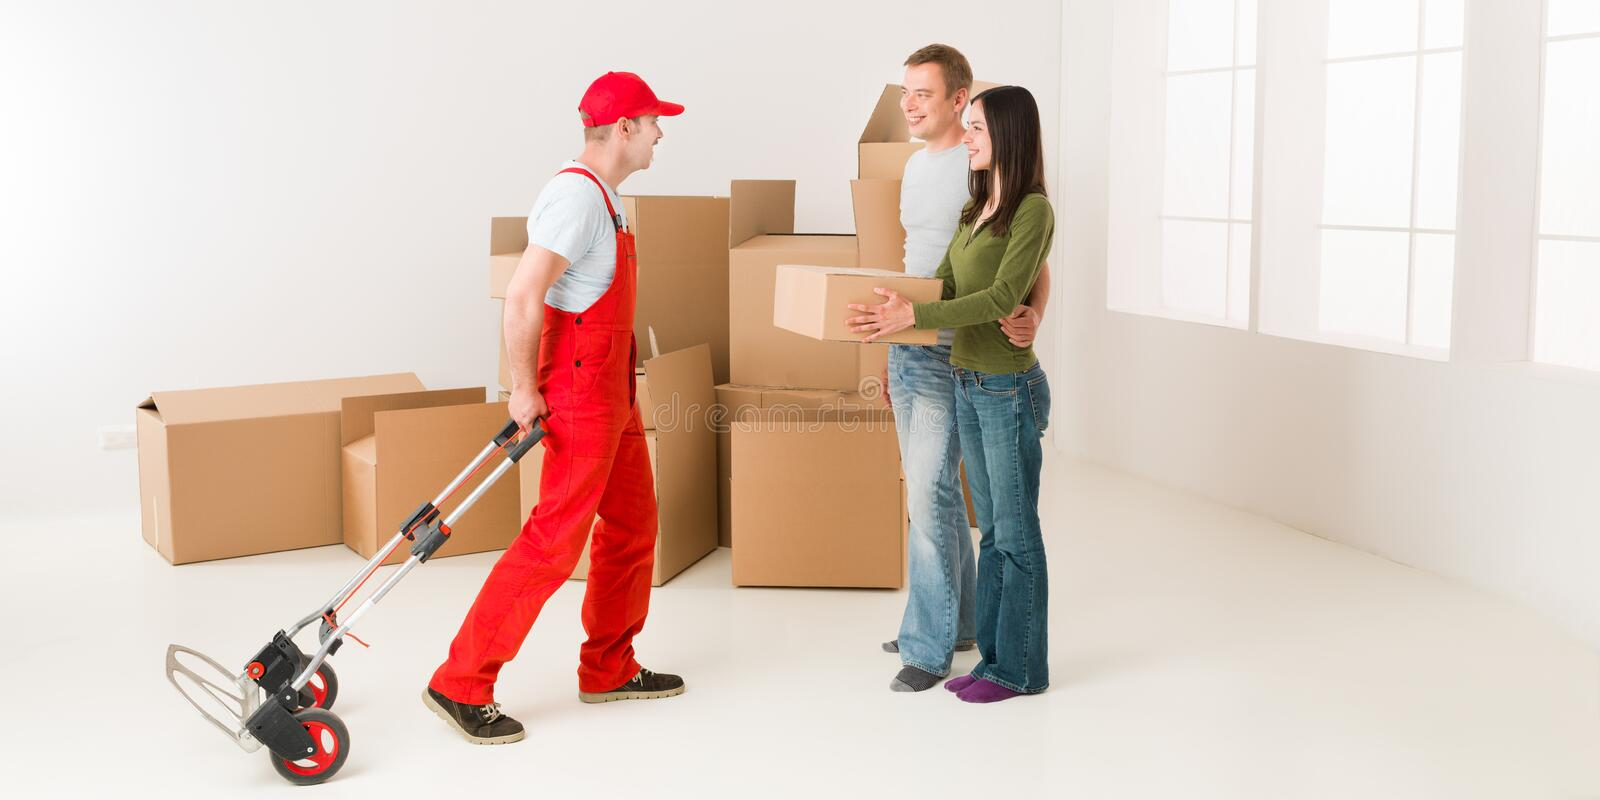 Good delivery service. Couple moving in new home and receiving package from delivery man royalty free stock images